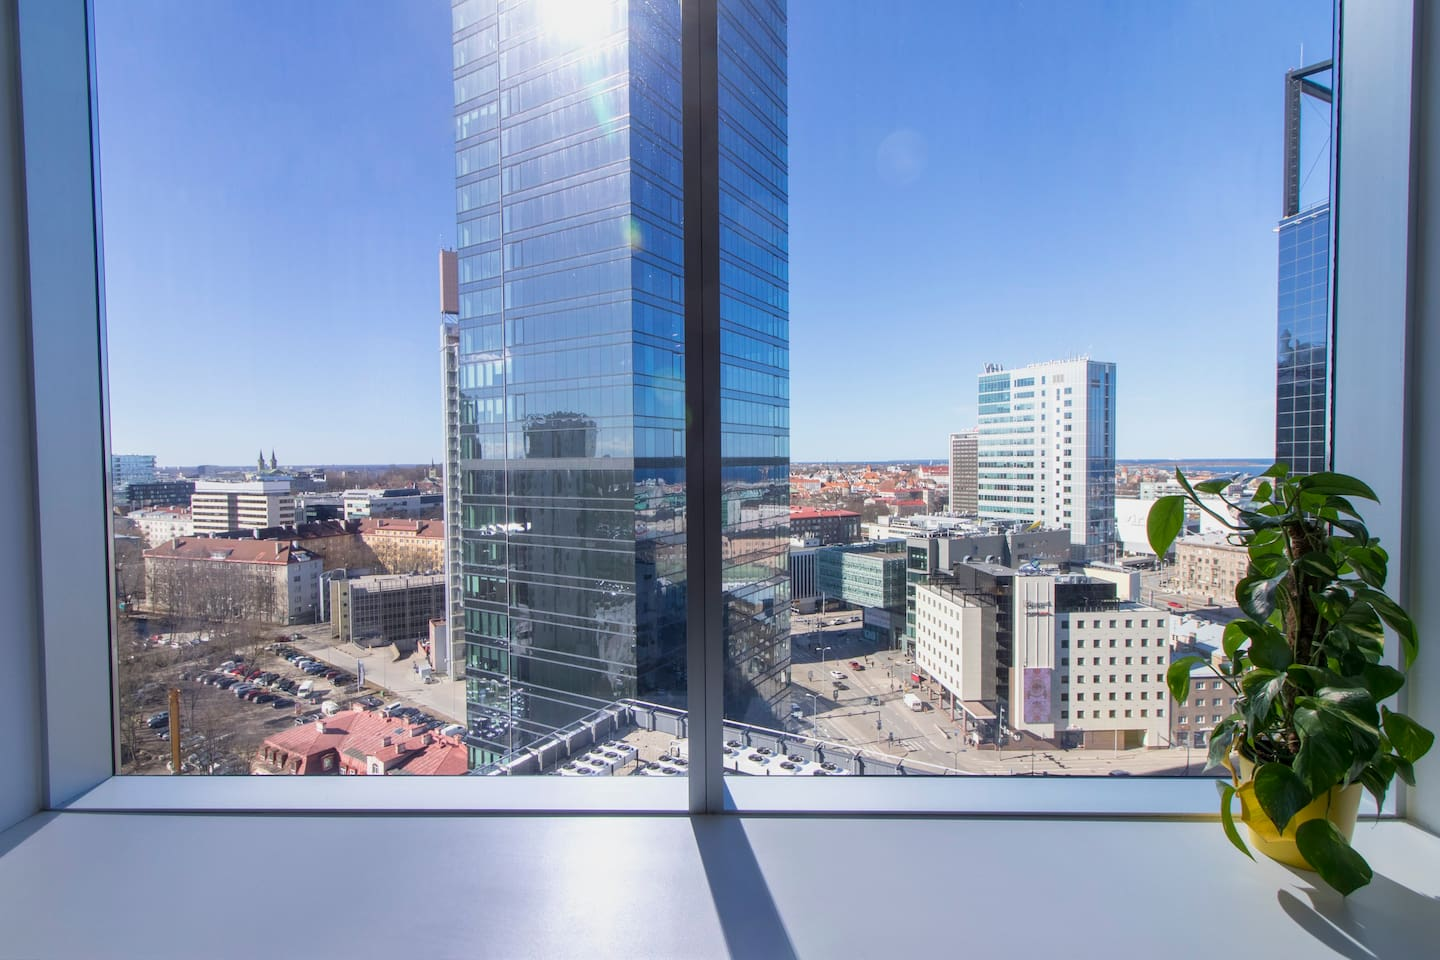 The apartment overlooks the modern city center of Tallinn, as well as part of the bay, with a stunning view through the huge windows.